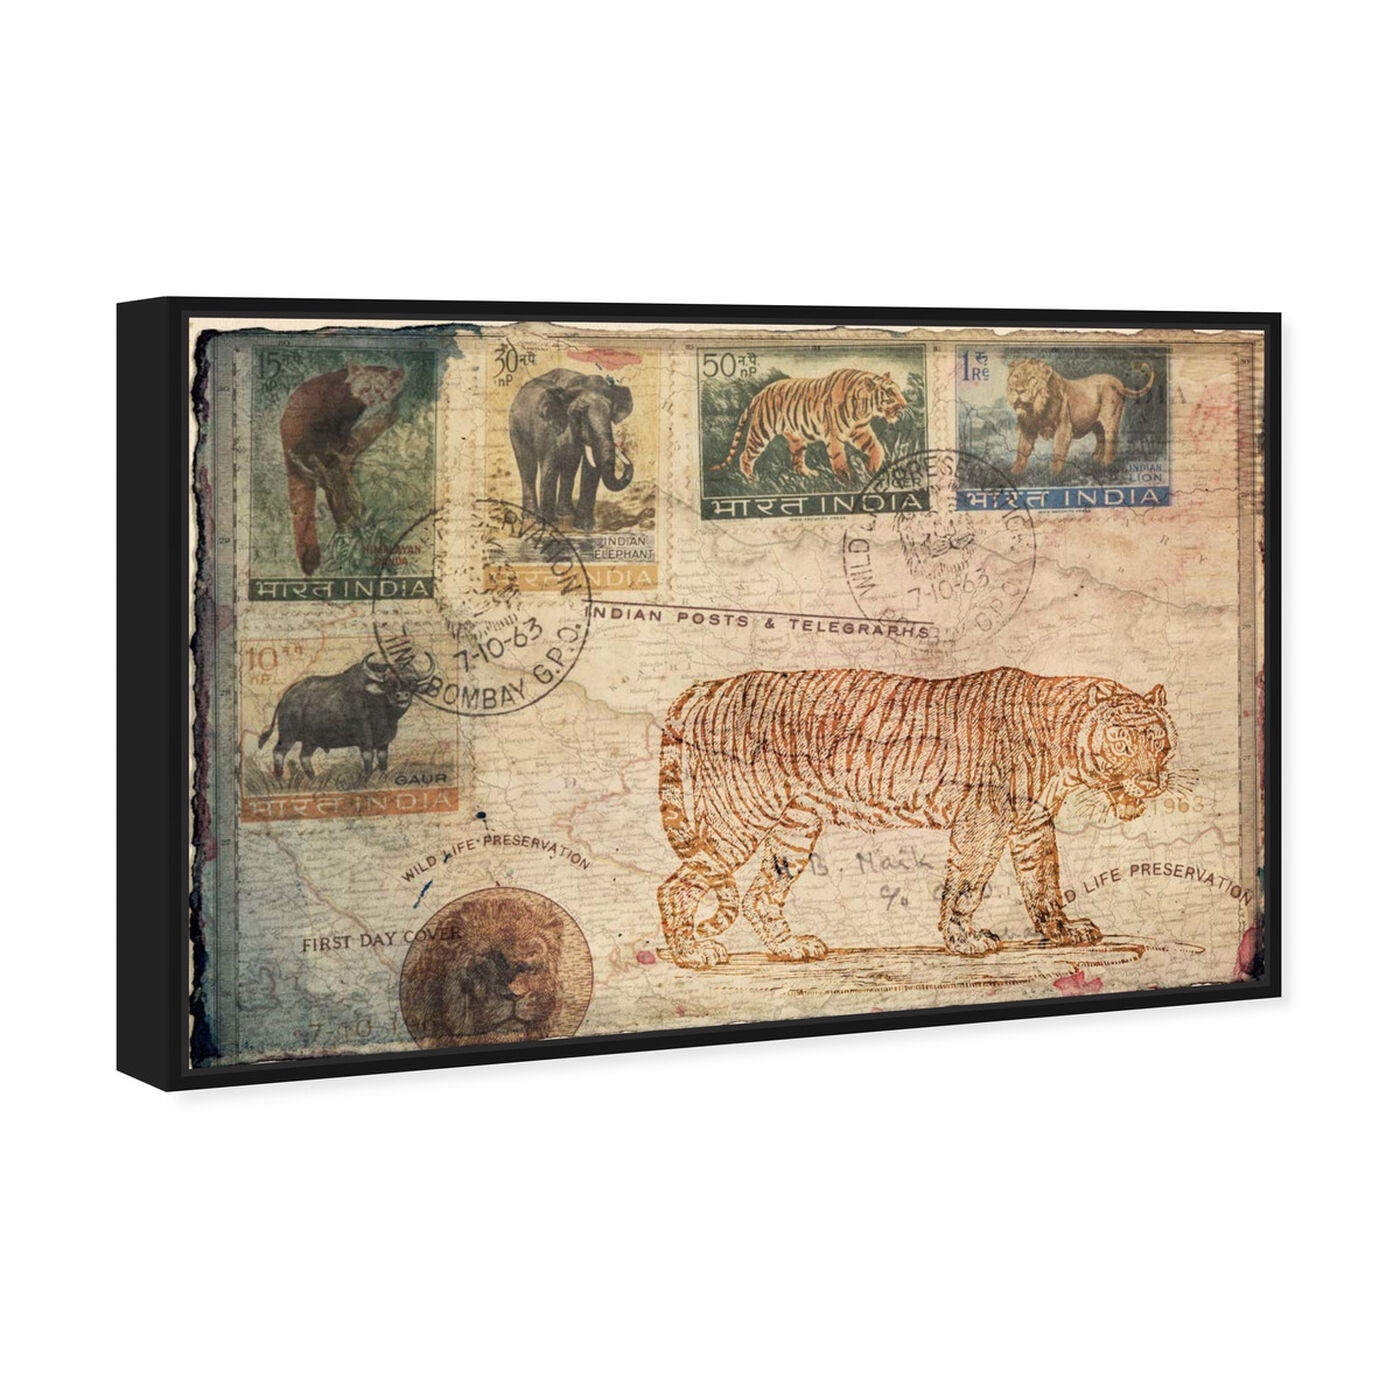 Angled view of Wild Life Preservation featuring animals and felines art.